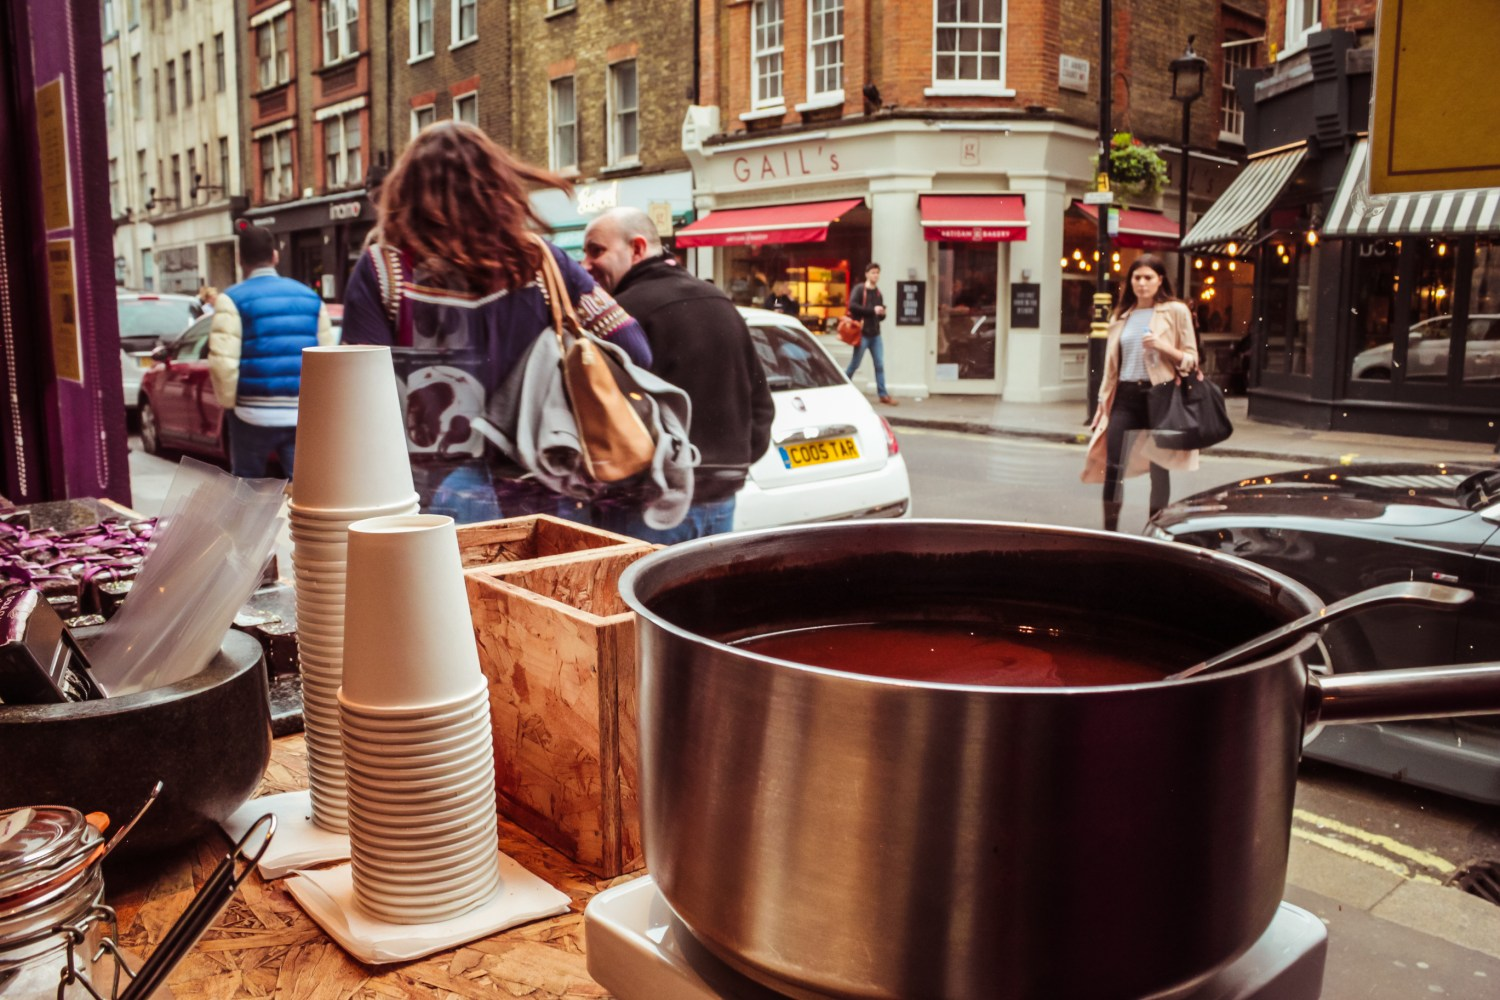 The Best Hot Chocolate in London